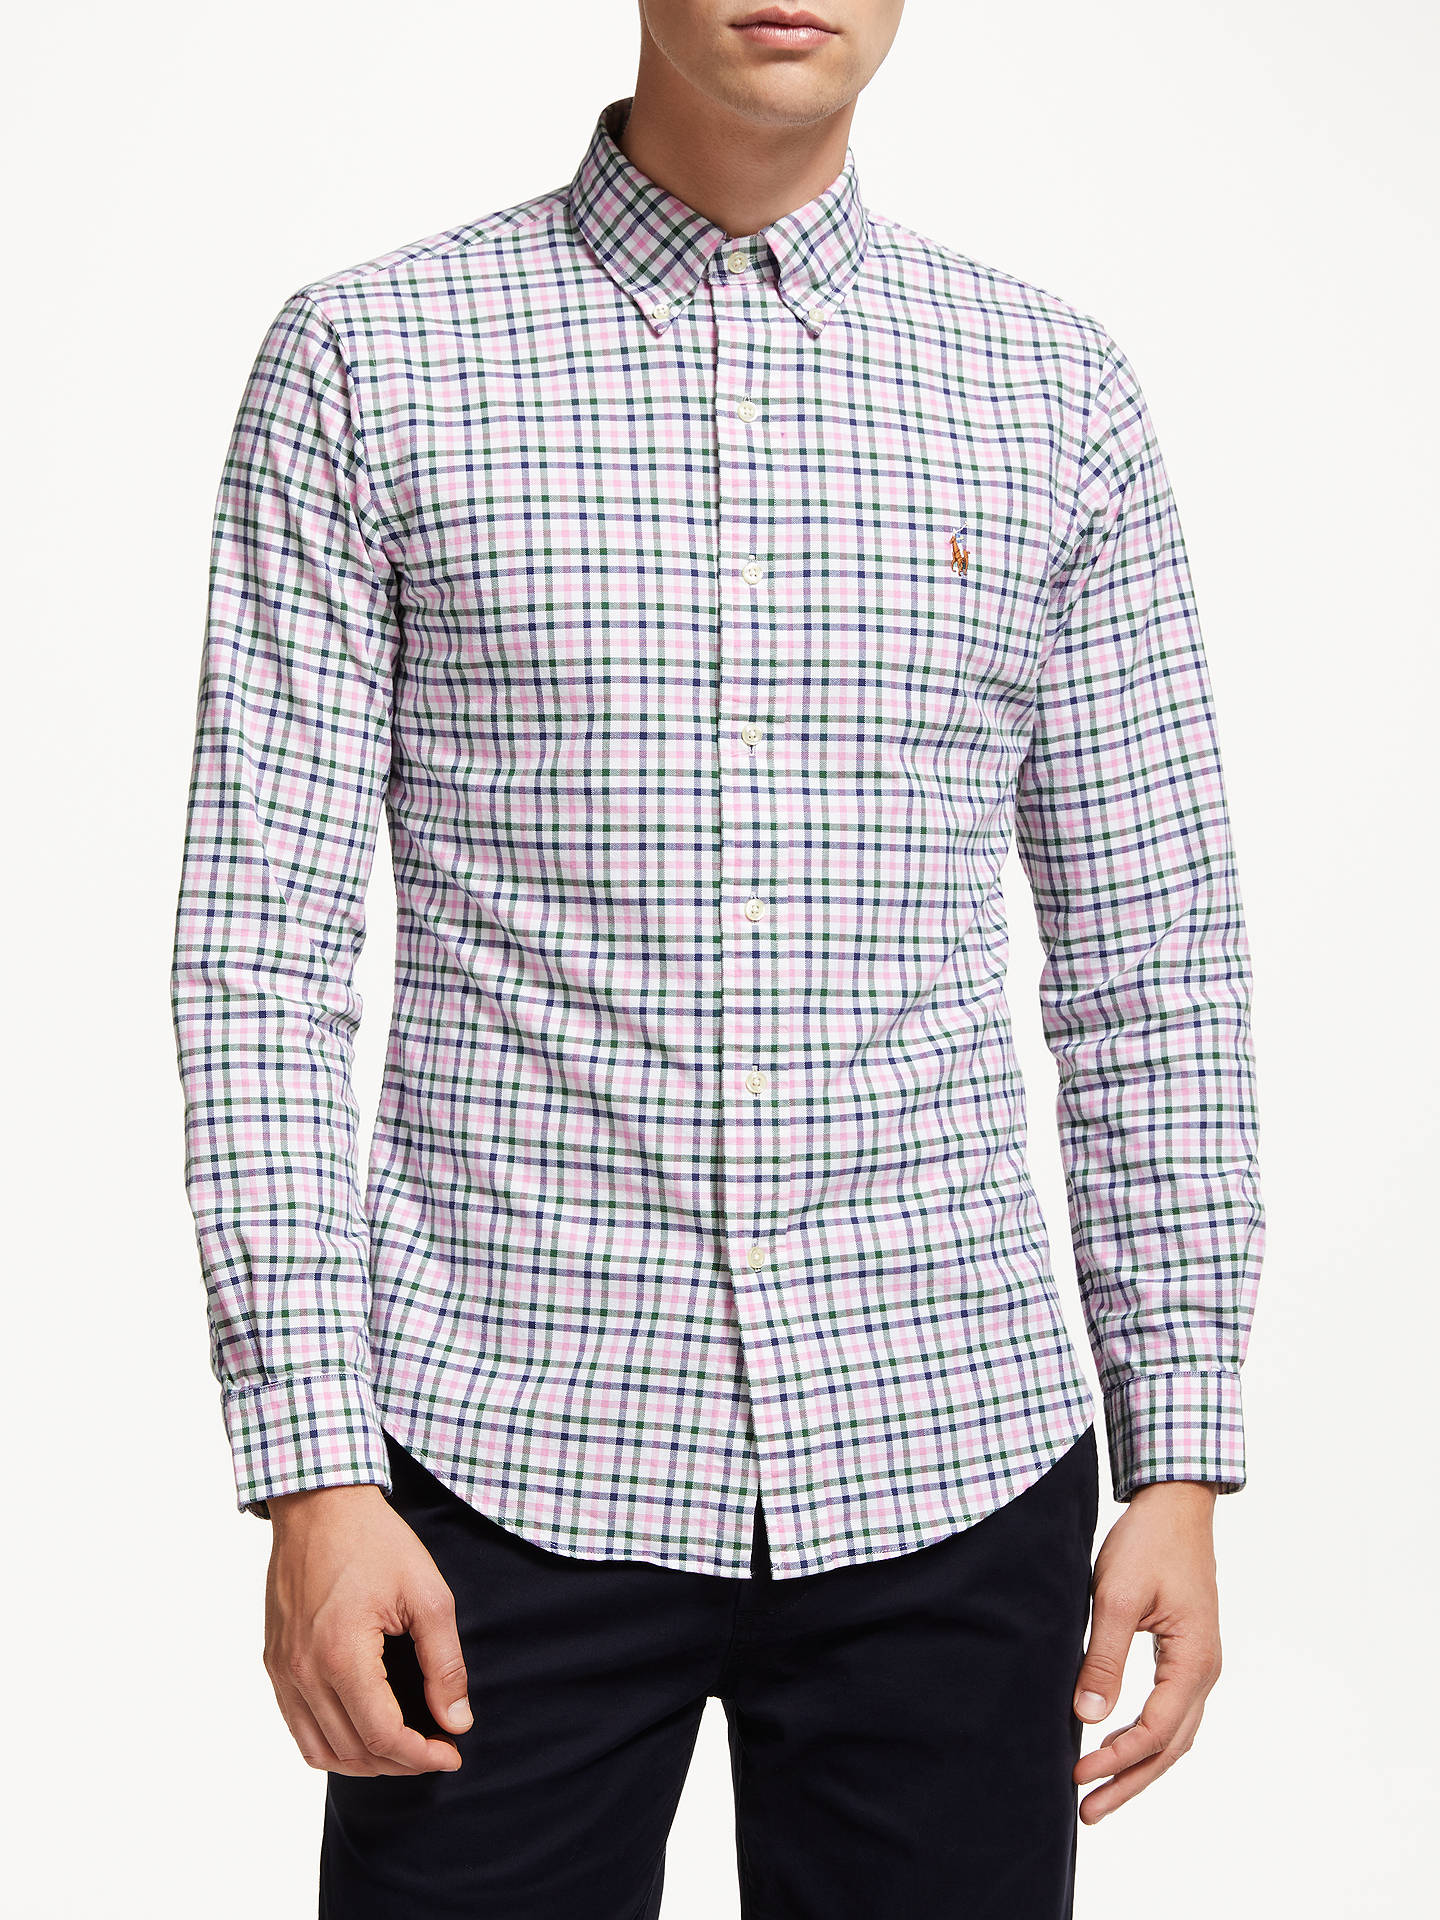 Buy Polo Ralph Lauren Check Sports Shirt, Pink/Green, S Online at johnlewis.com